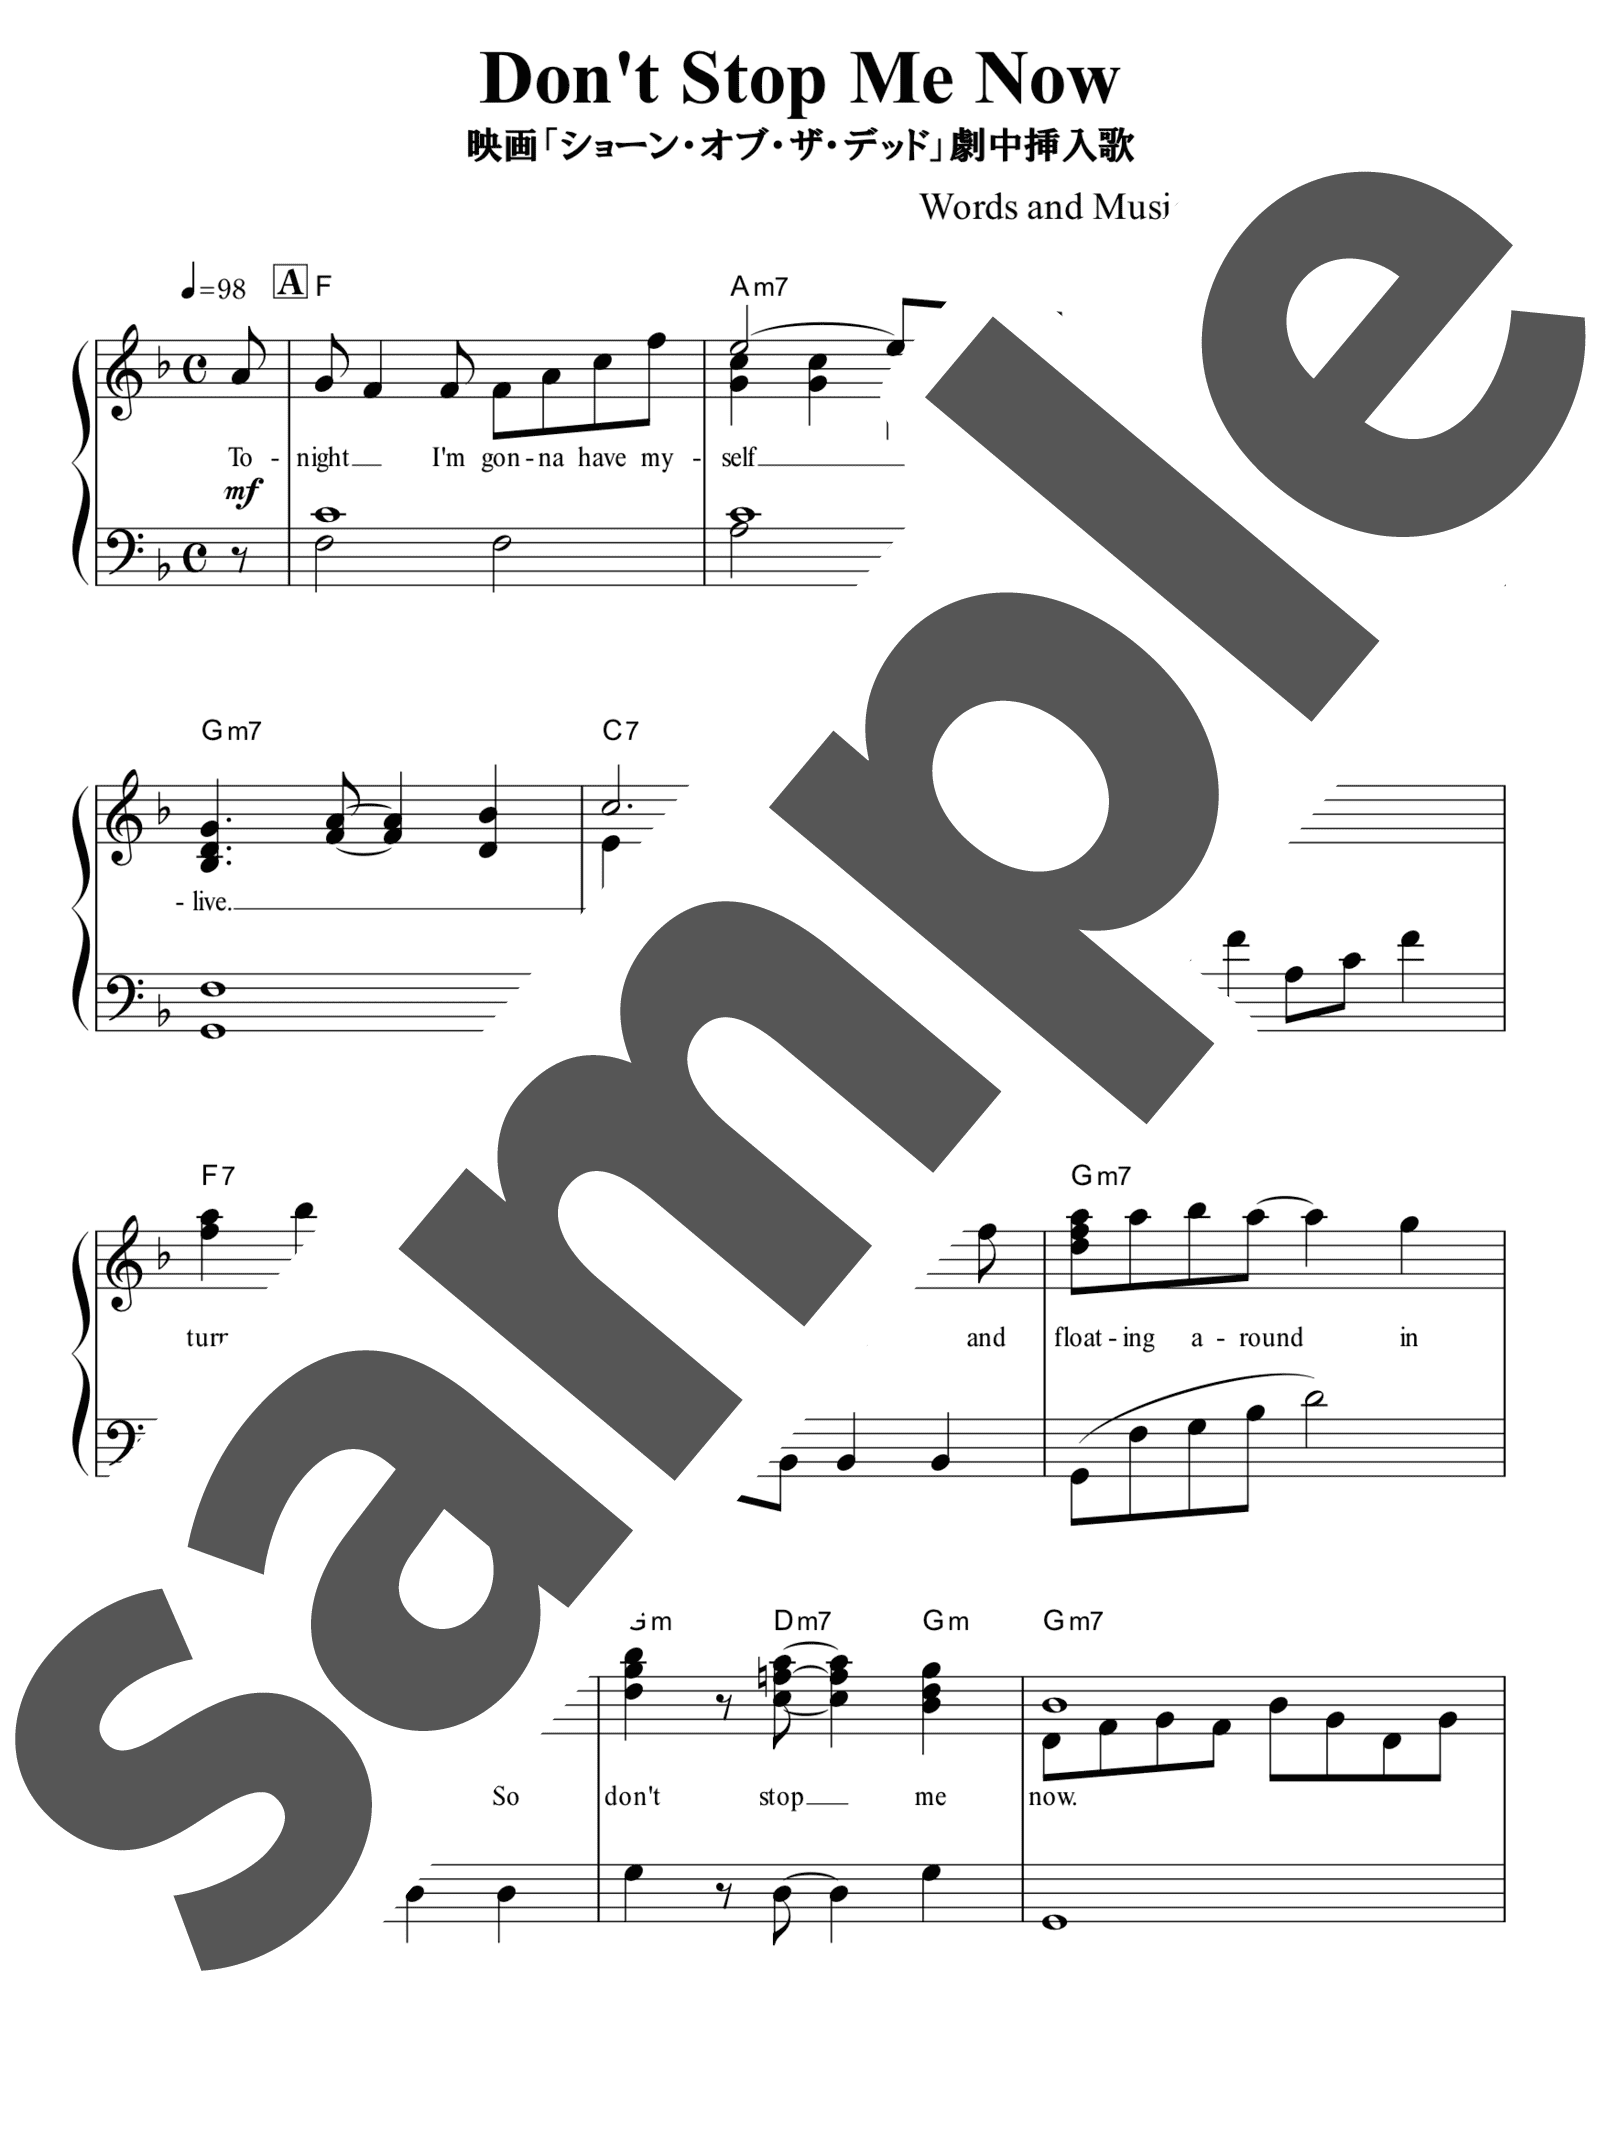 「Don't Stop Me Now」のサンプル楽譜